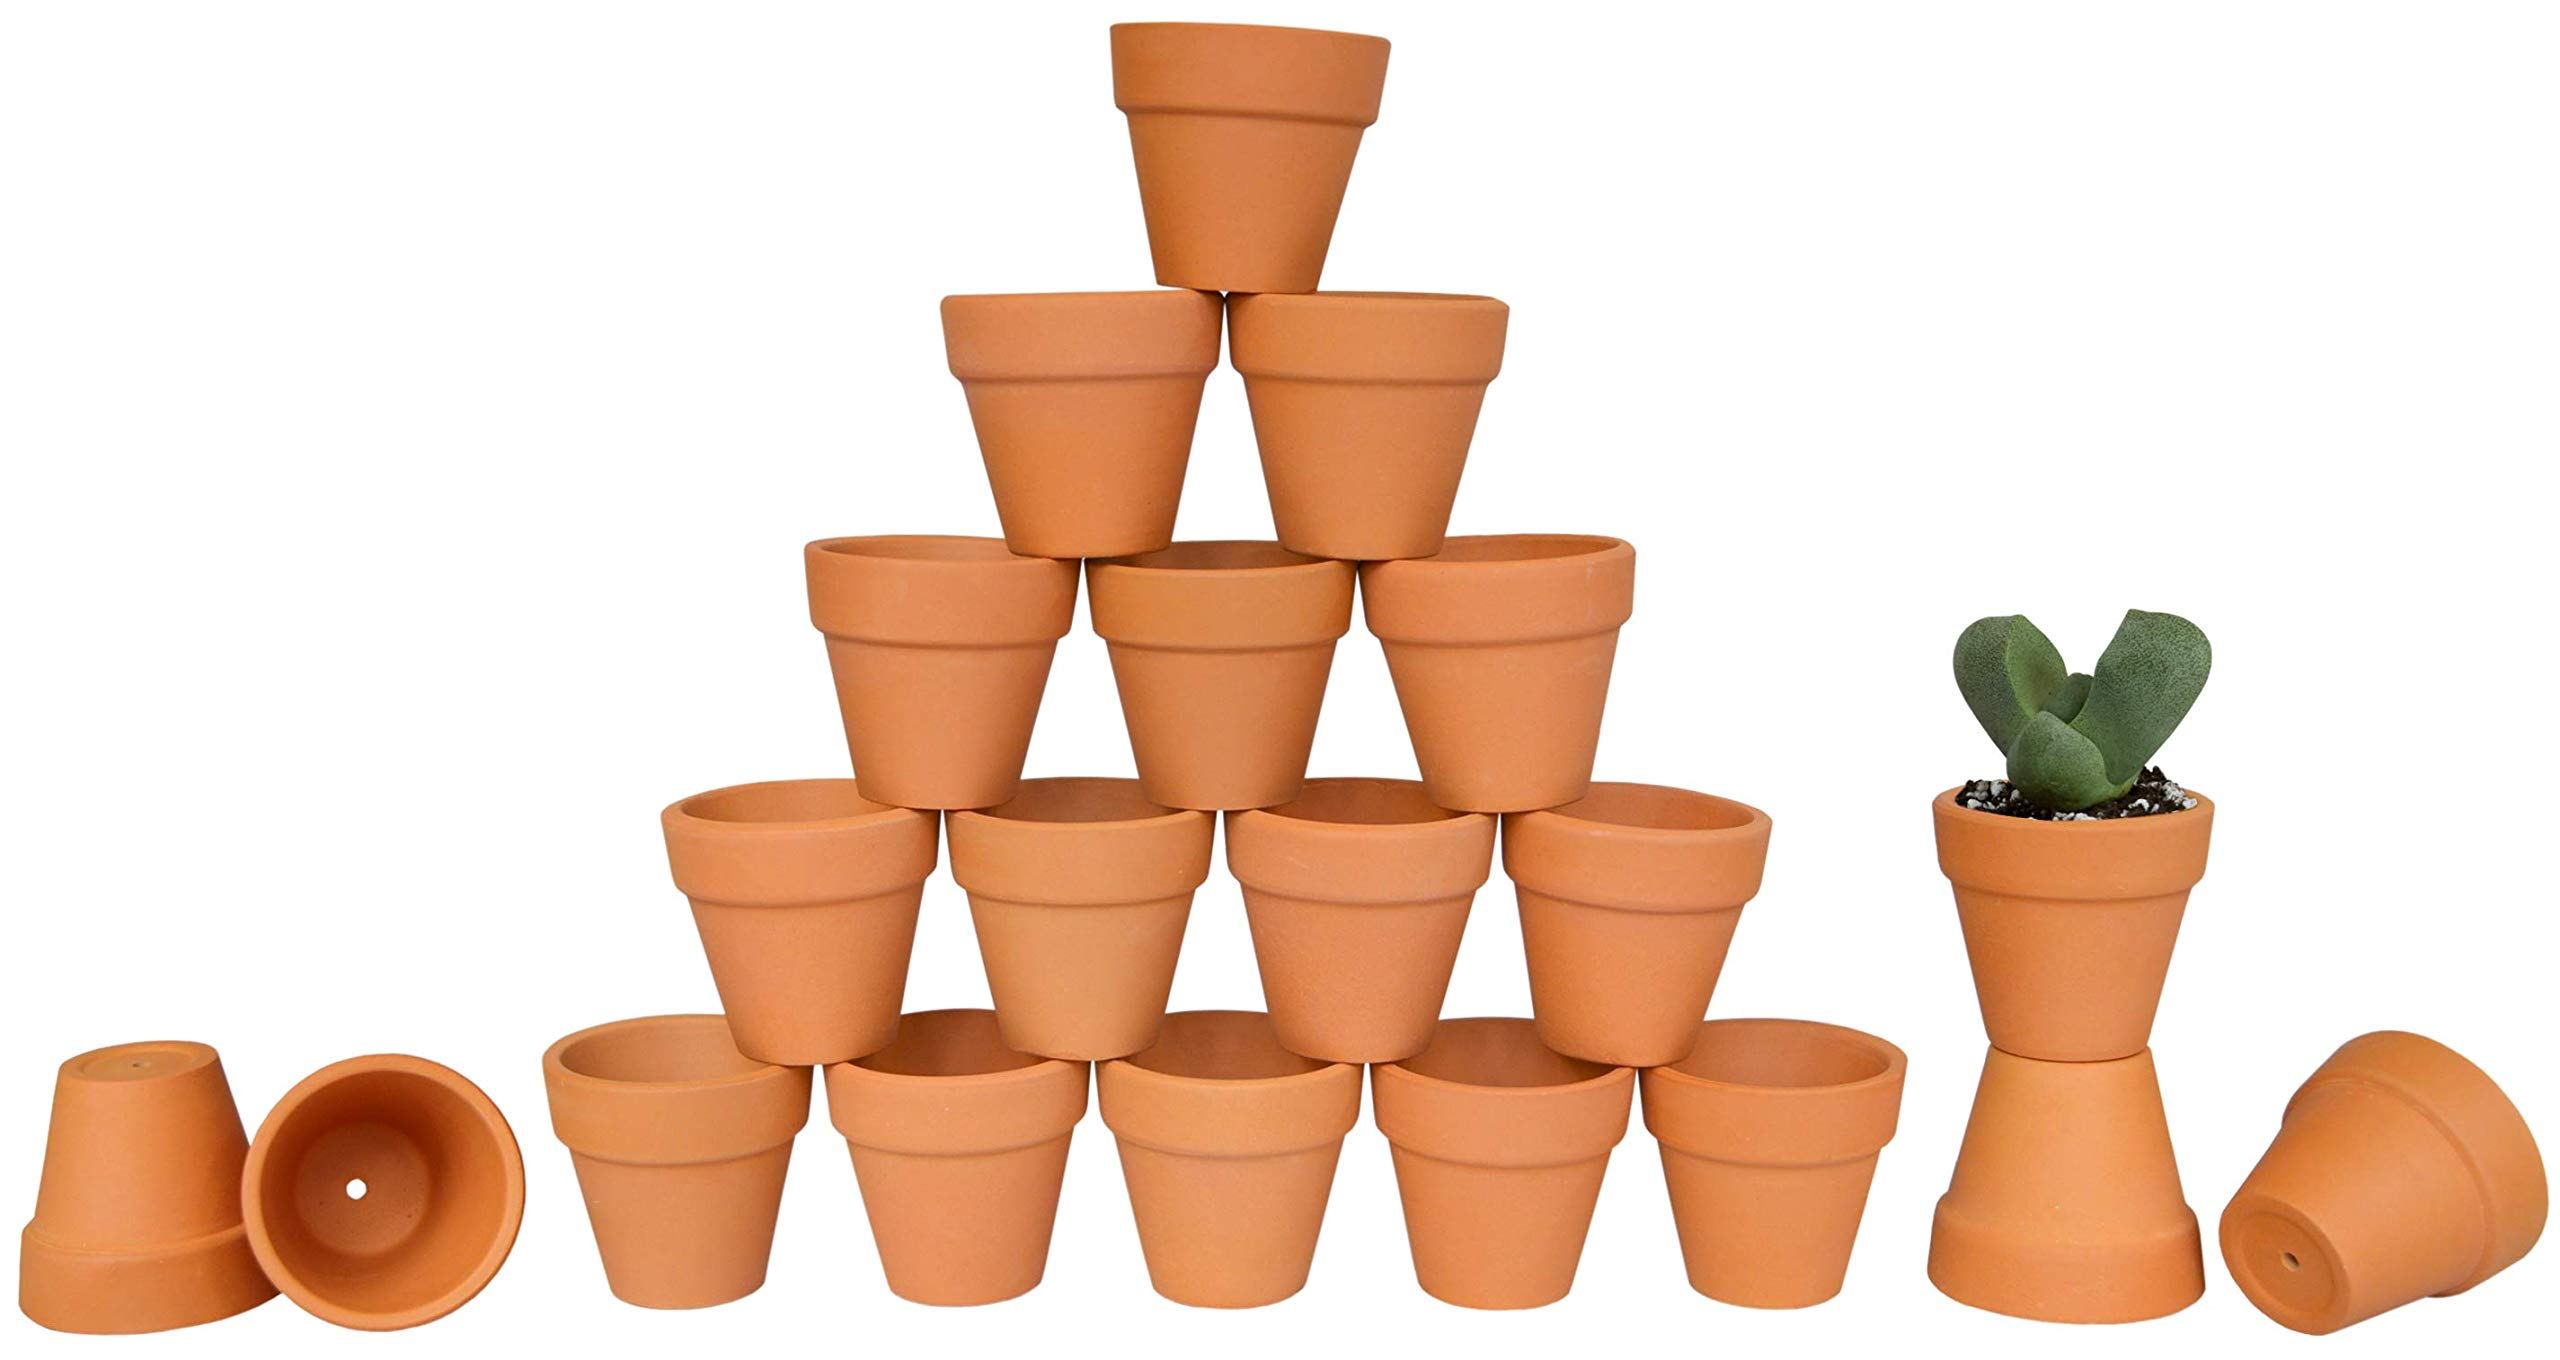 My Urban Crafts 2'' Mini Terracotta Clay Pots - Great for Succulent & Cactus Nursery Planter, DIY Craft Projects, Wedding and Party Favors (Set of 20)